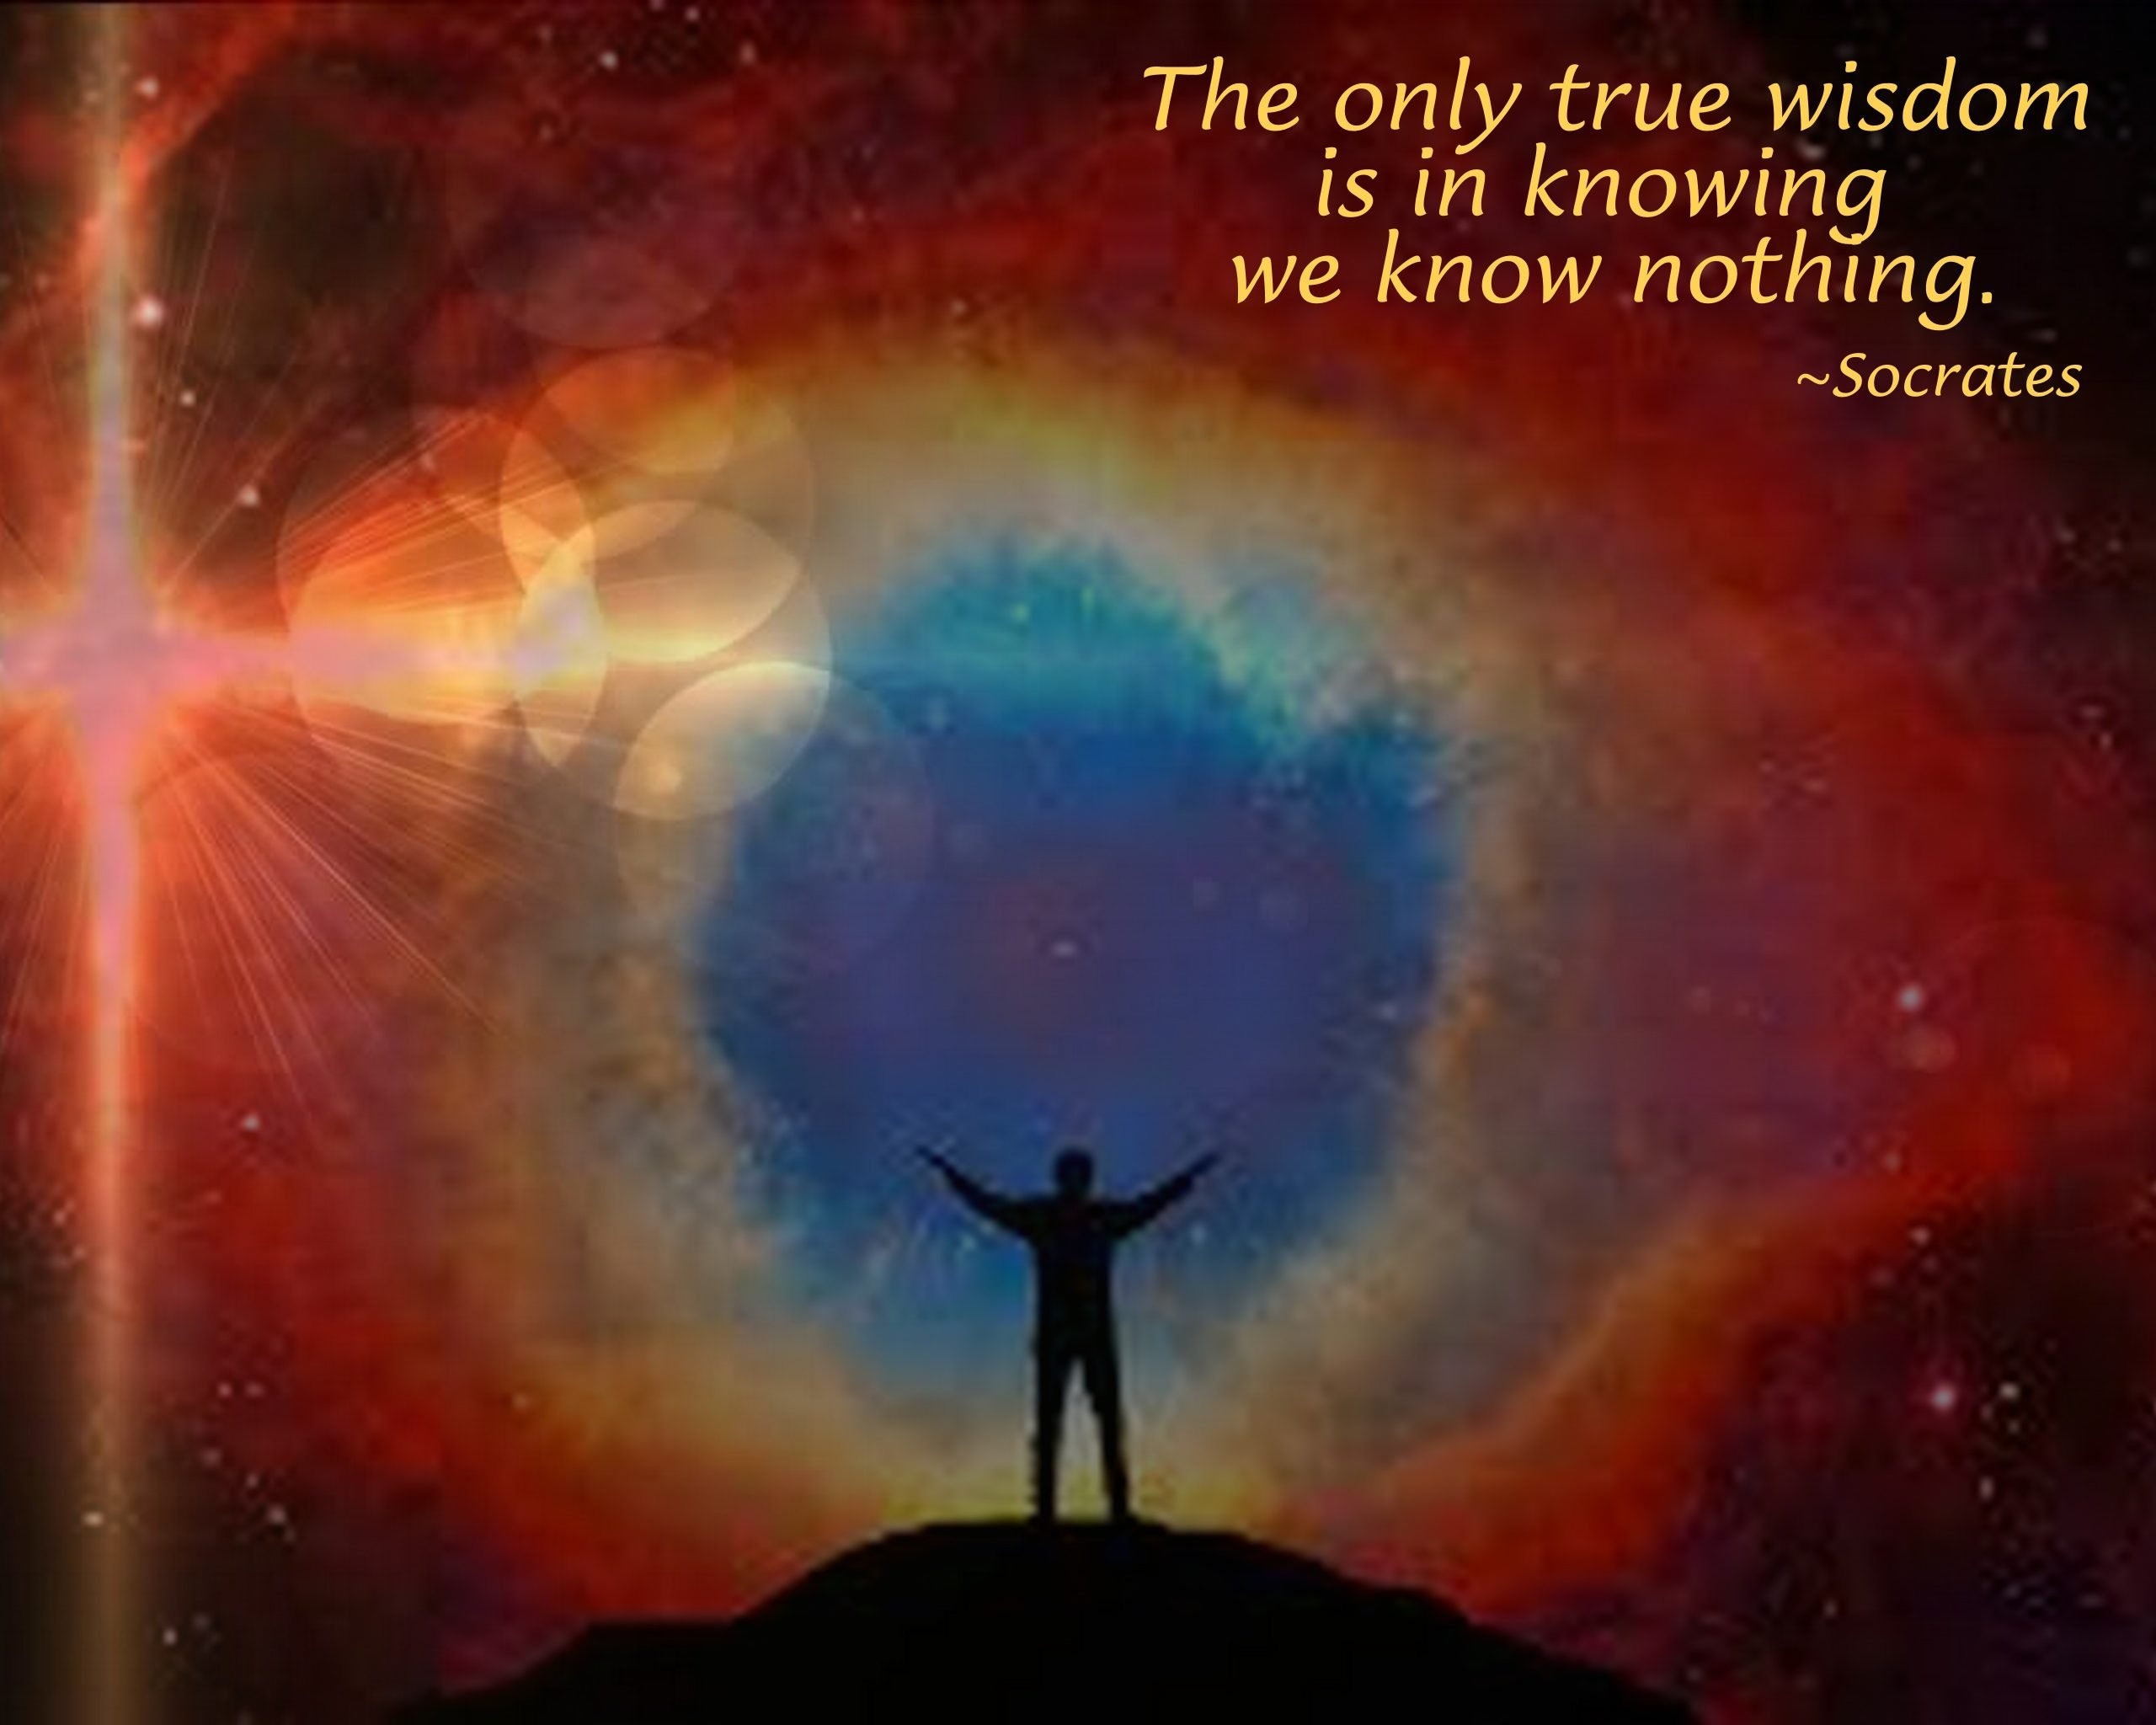 """The only true wisdom is in knowing we know nothing."" Join us at Forum!"